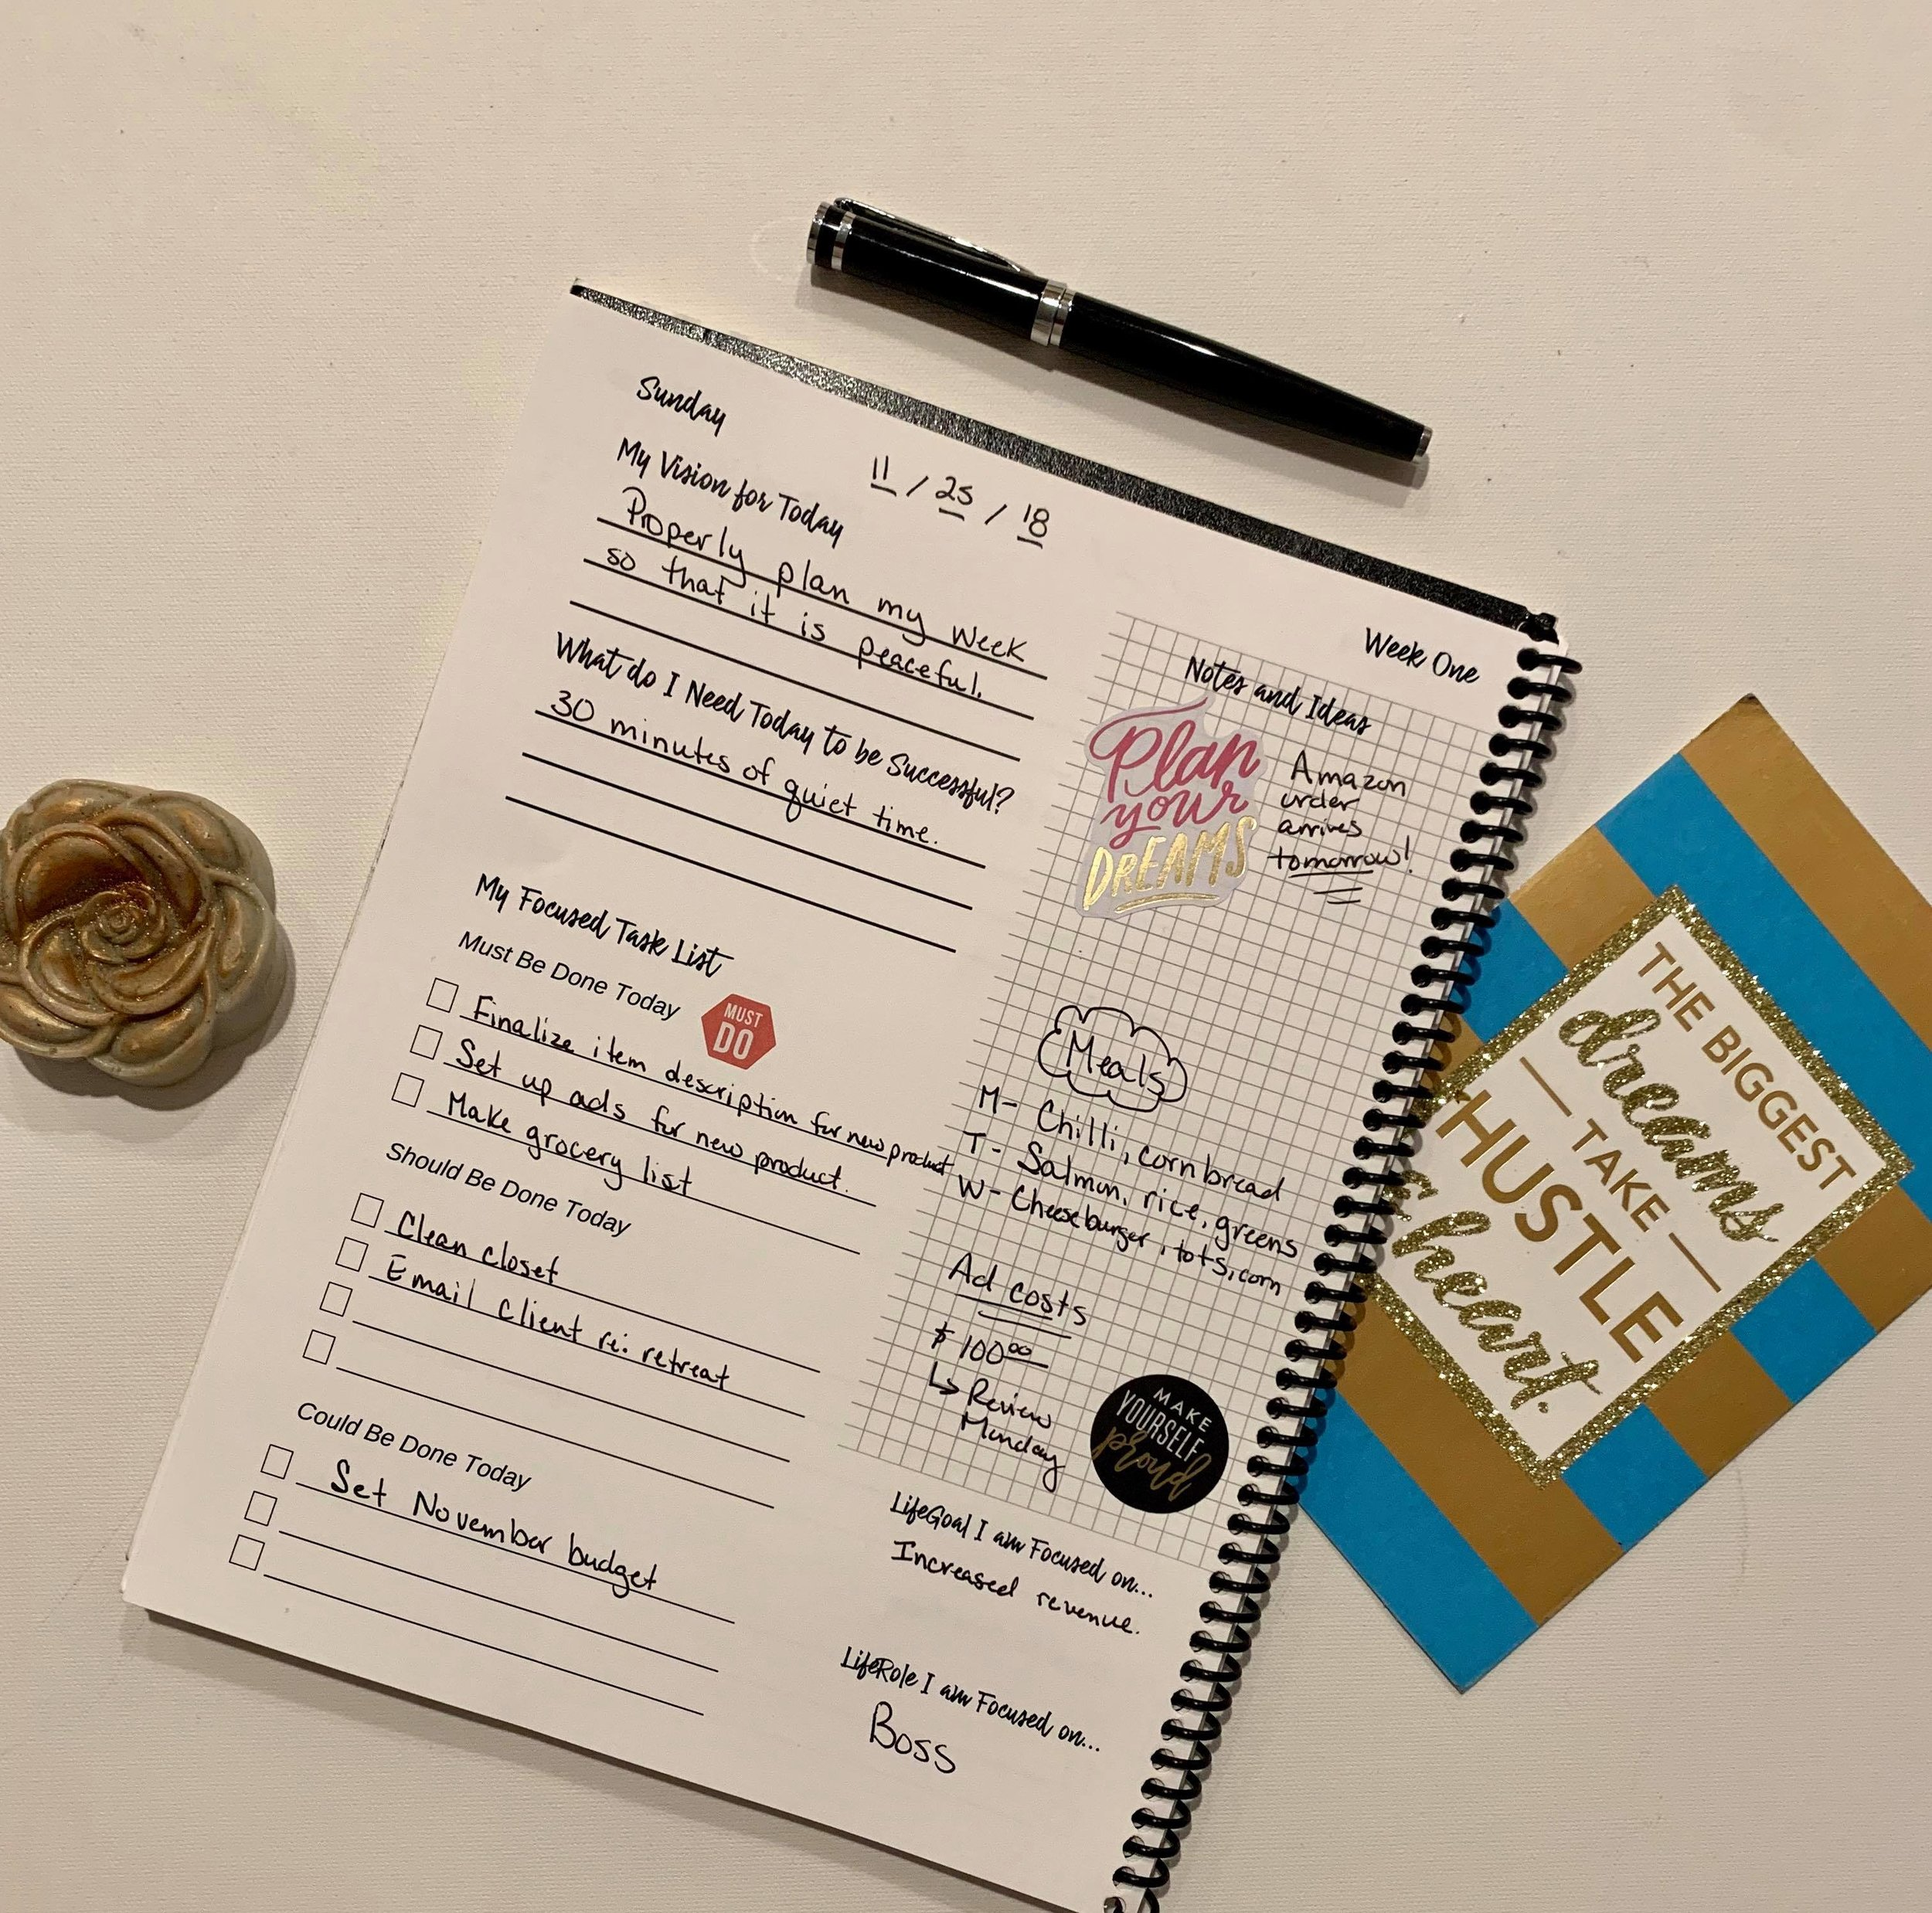 Daily Planning Pages - Plan to win your day and you will win at life.